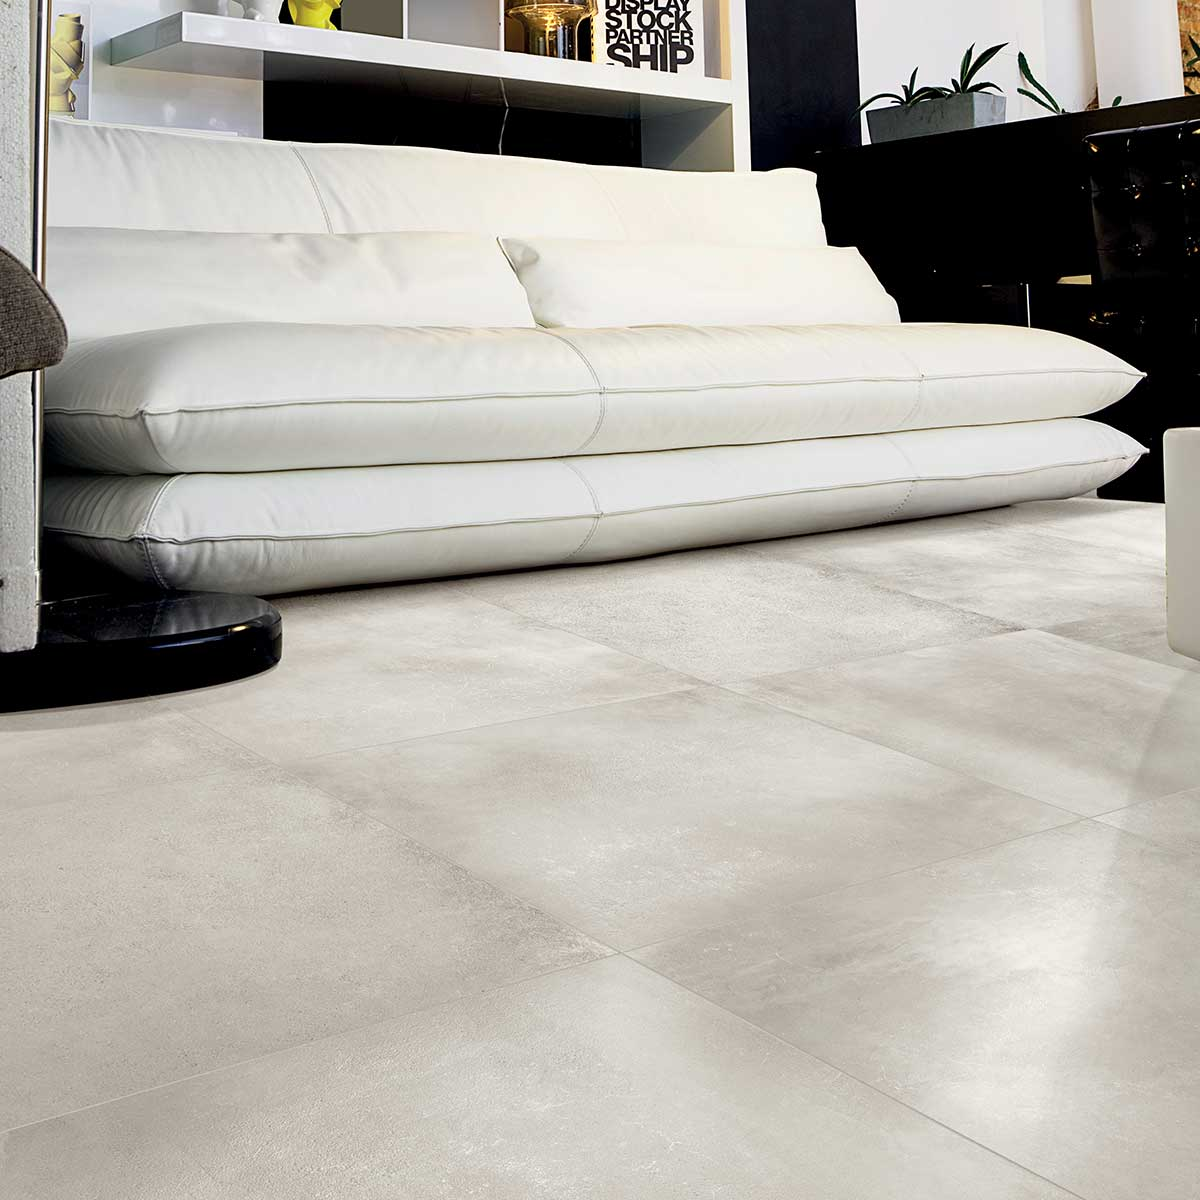 porcelain-stoneware-how-to-know-if-it-is-of-quality-16